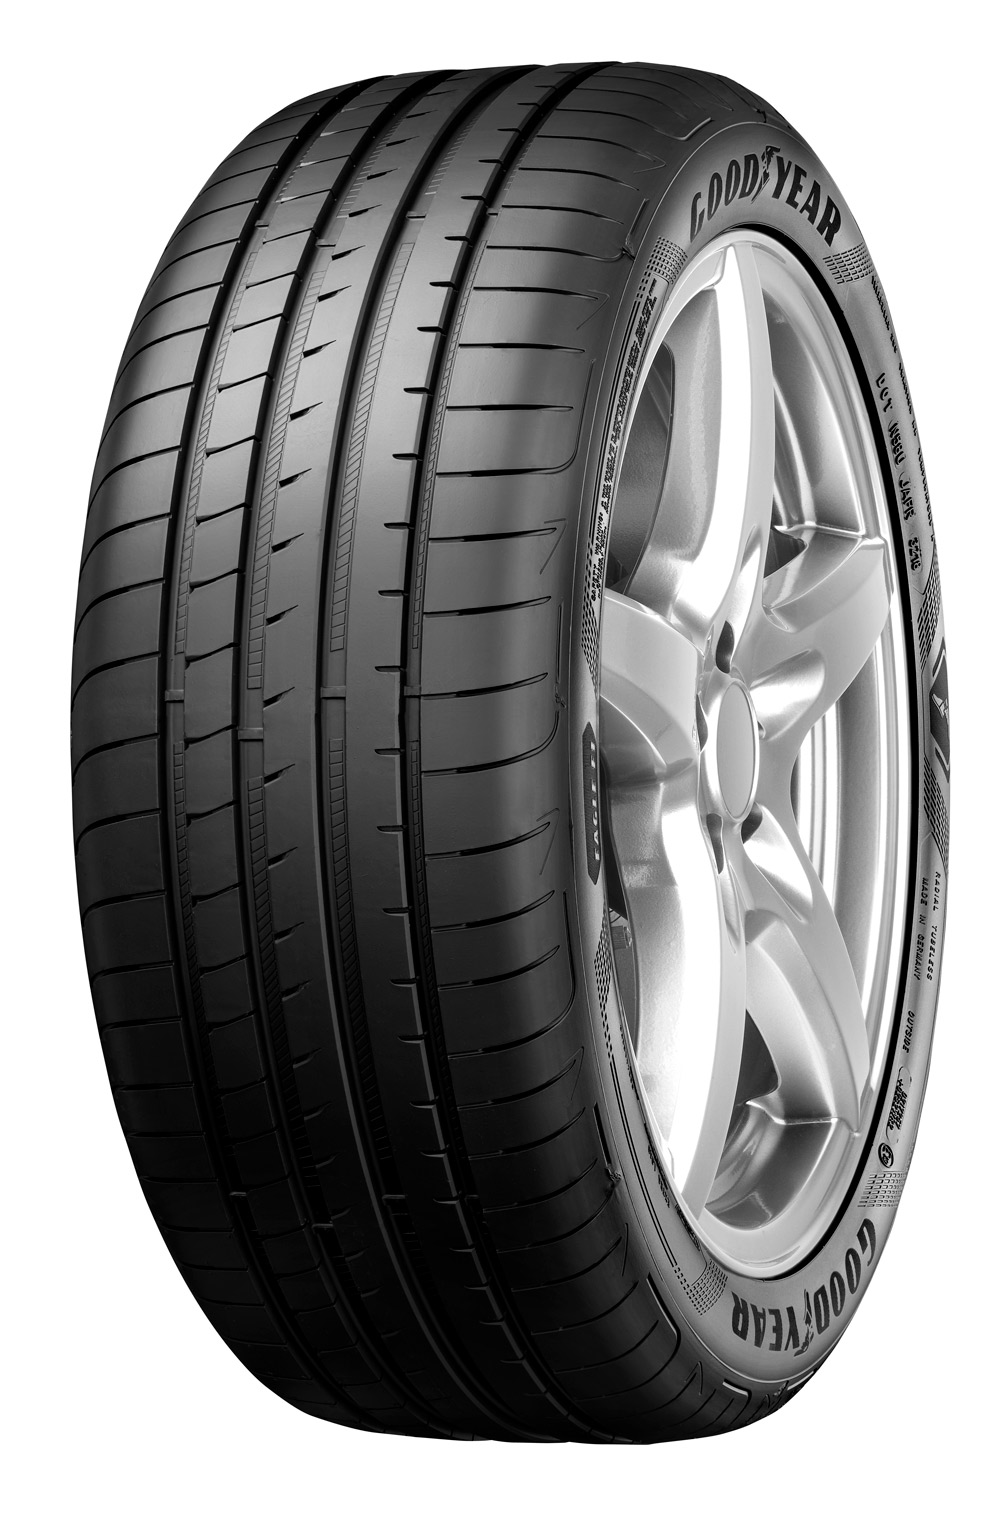 Автошина GOODYEAR EAGLE F1 ASYMMETRIC 5 315/30 R22 107Y Лето